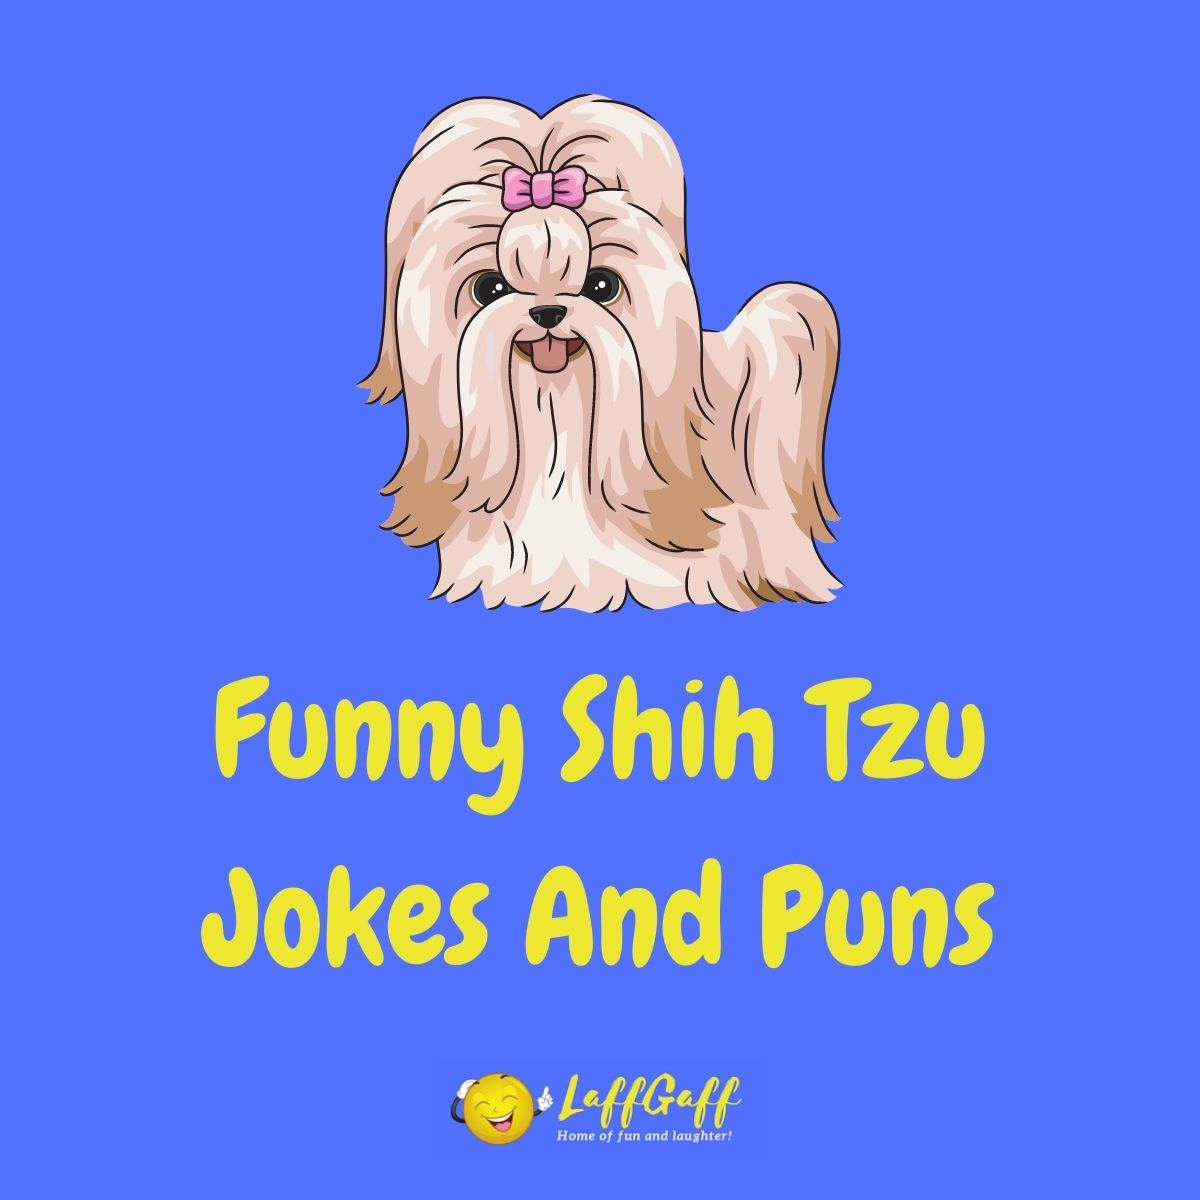 Featured image for a page of funny Shih Tzu jokes and puns.